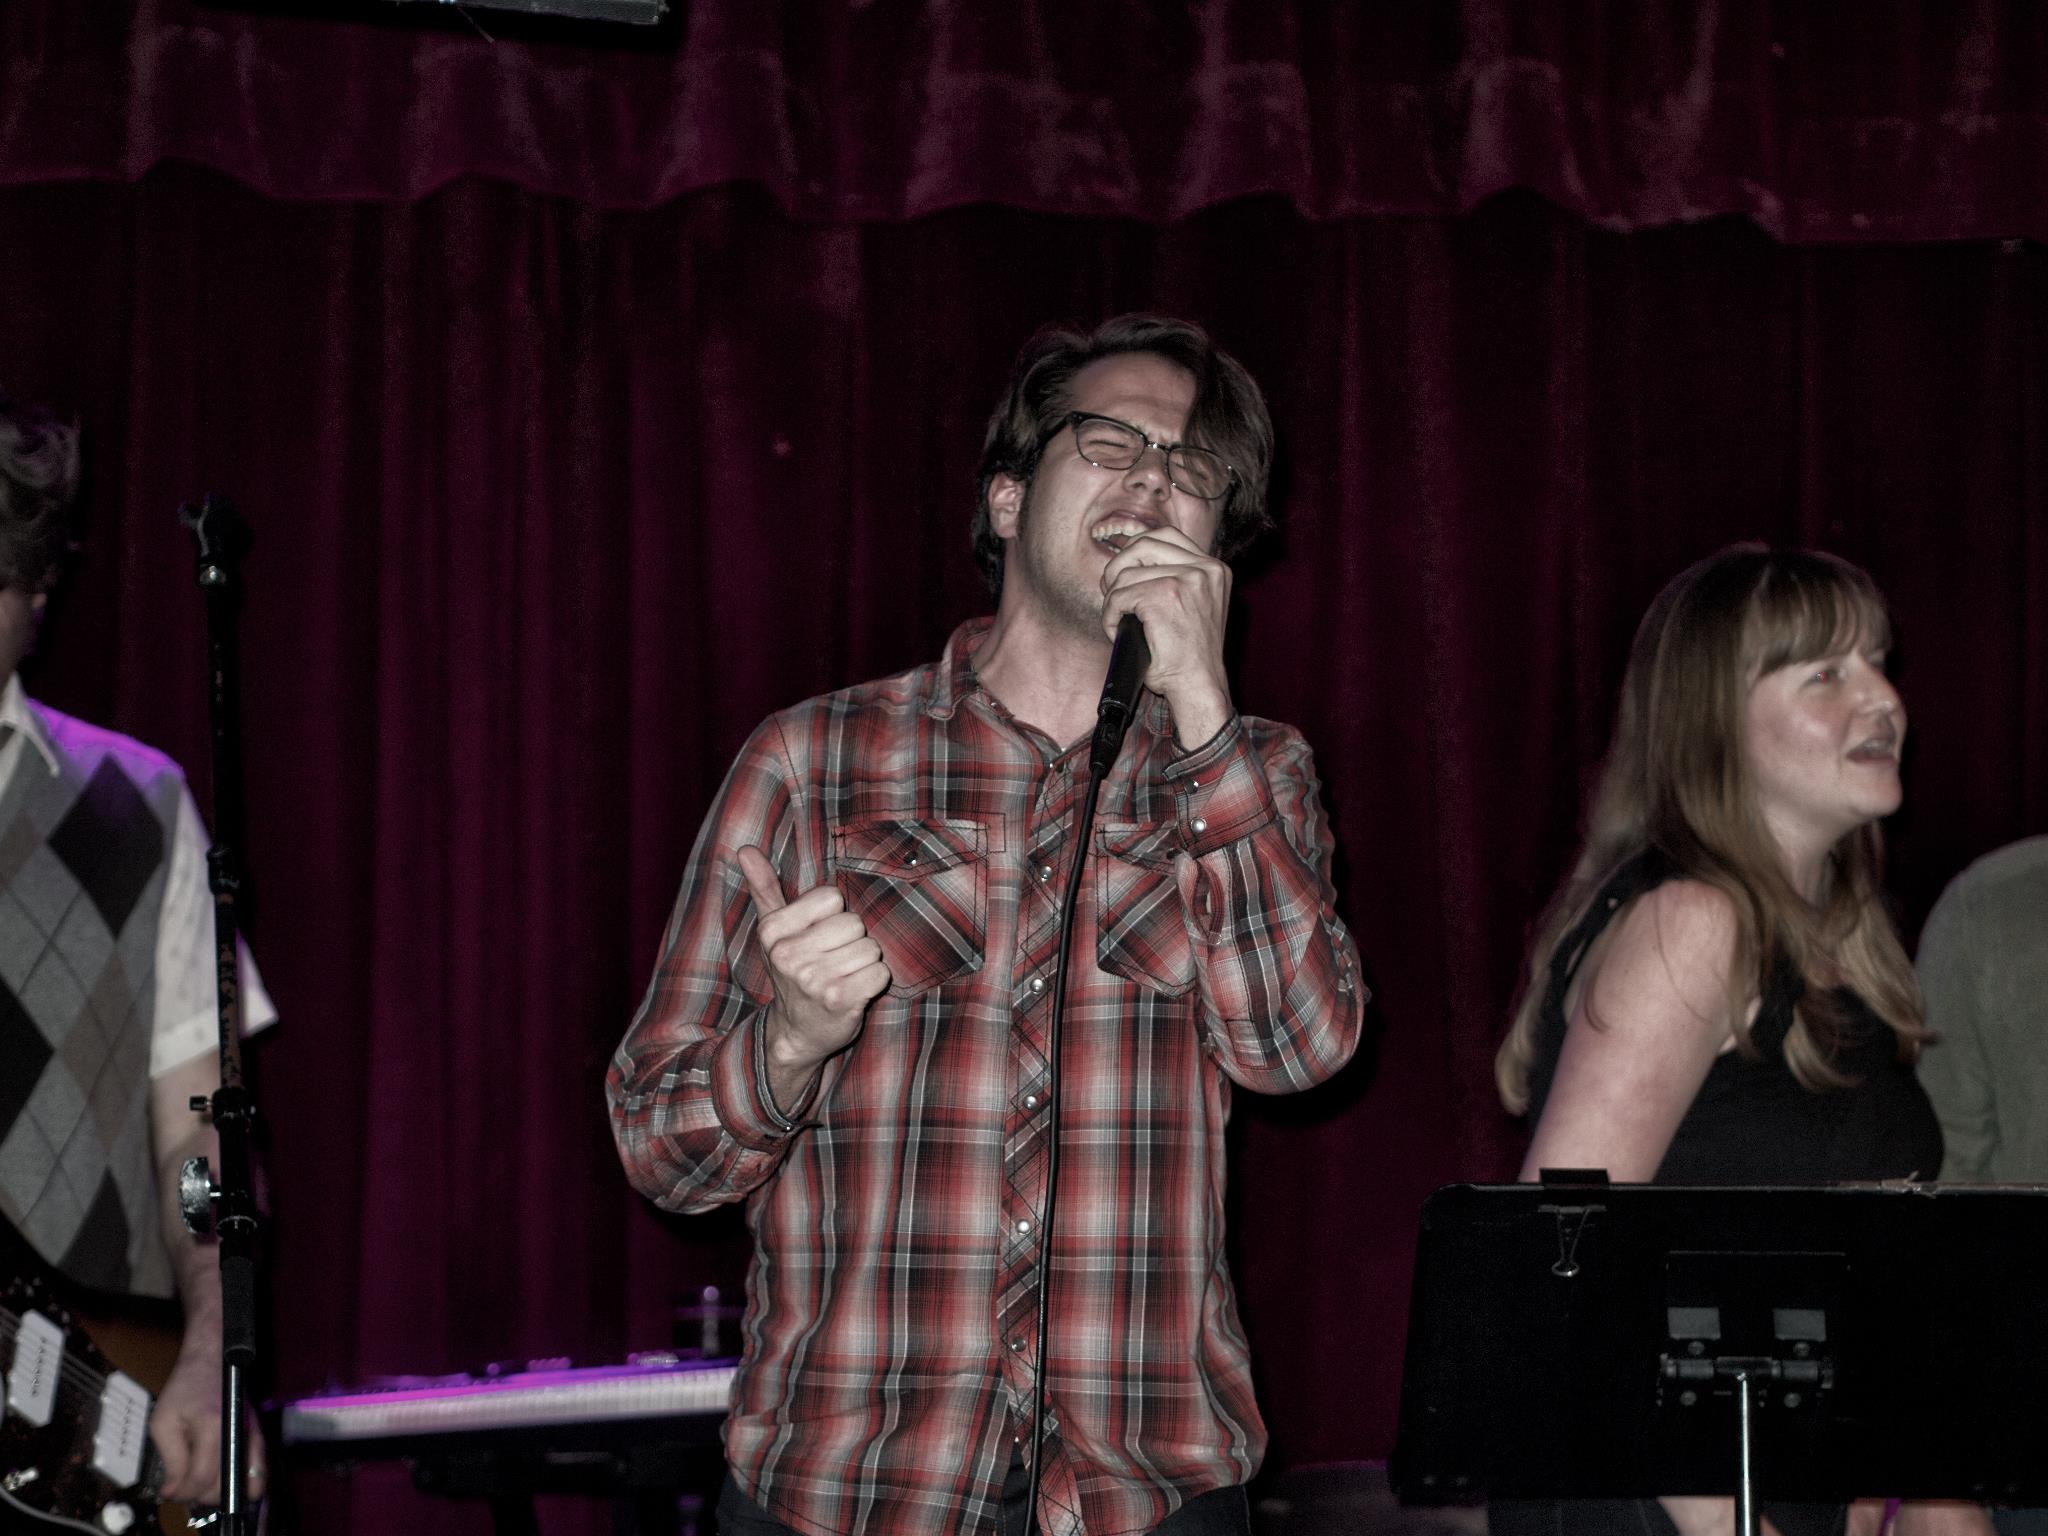 Justin belting out a song at live-band karaoke